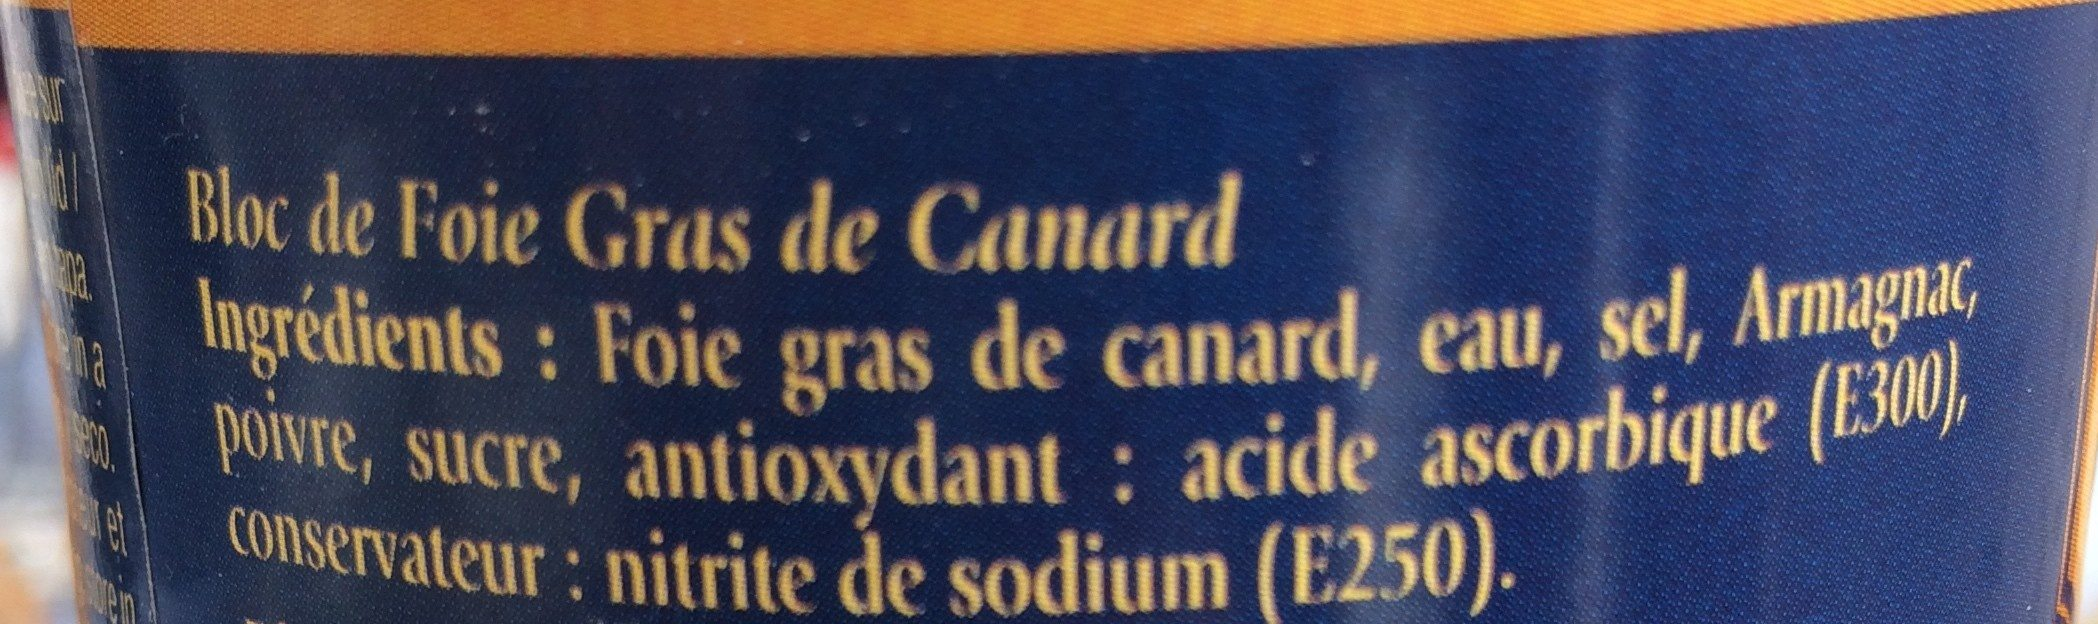 Bloc de Foie Gras de Canard - Ingredients - fr